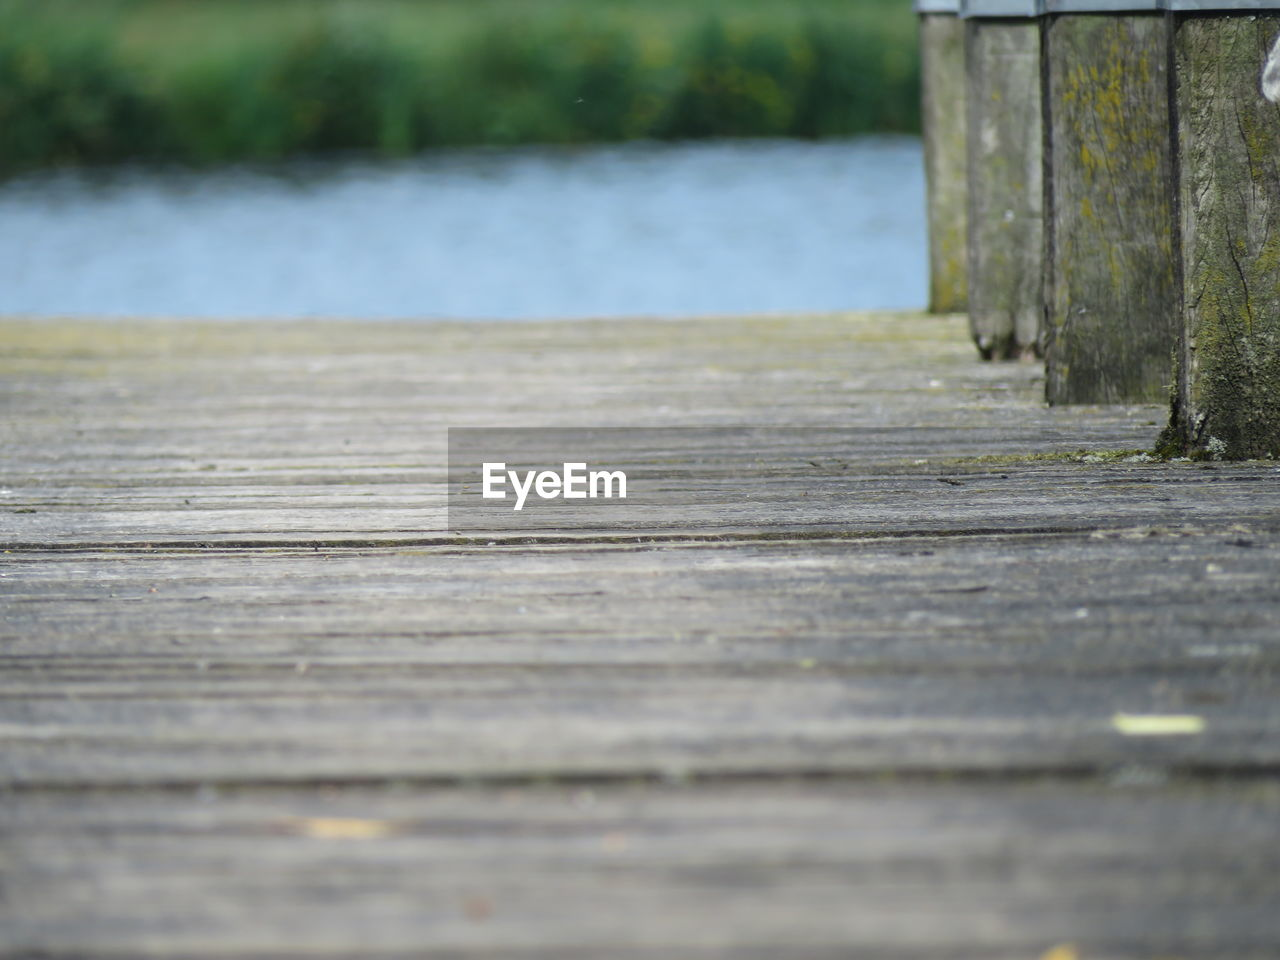 wood - material, selective focus, day, no people, outdoors, tree, nature, tranquility, the way forward, wood, direction, close-up, land, diminishing perspective, textured, surface level, tranquil scene, footpath, water, plant